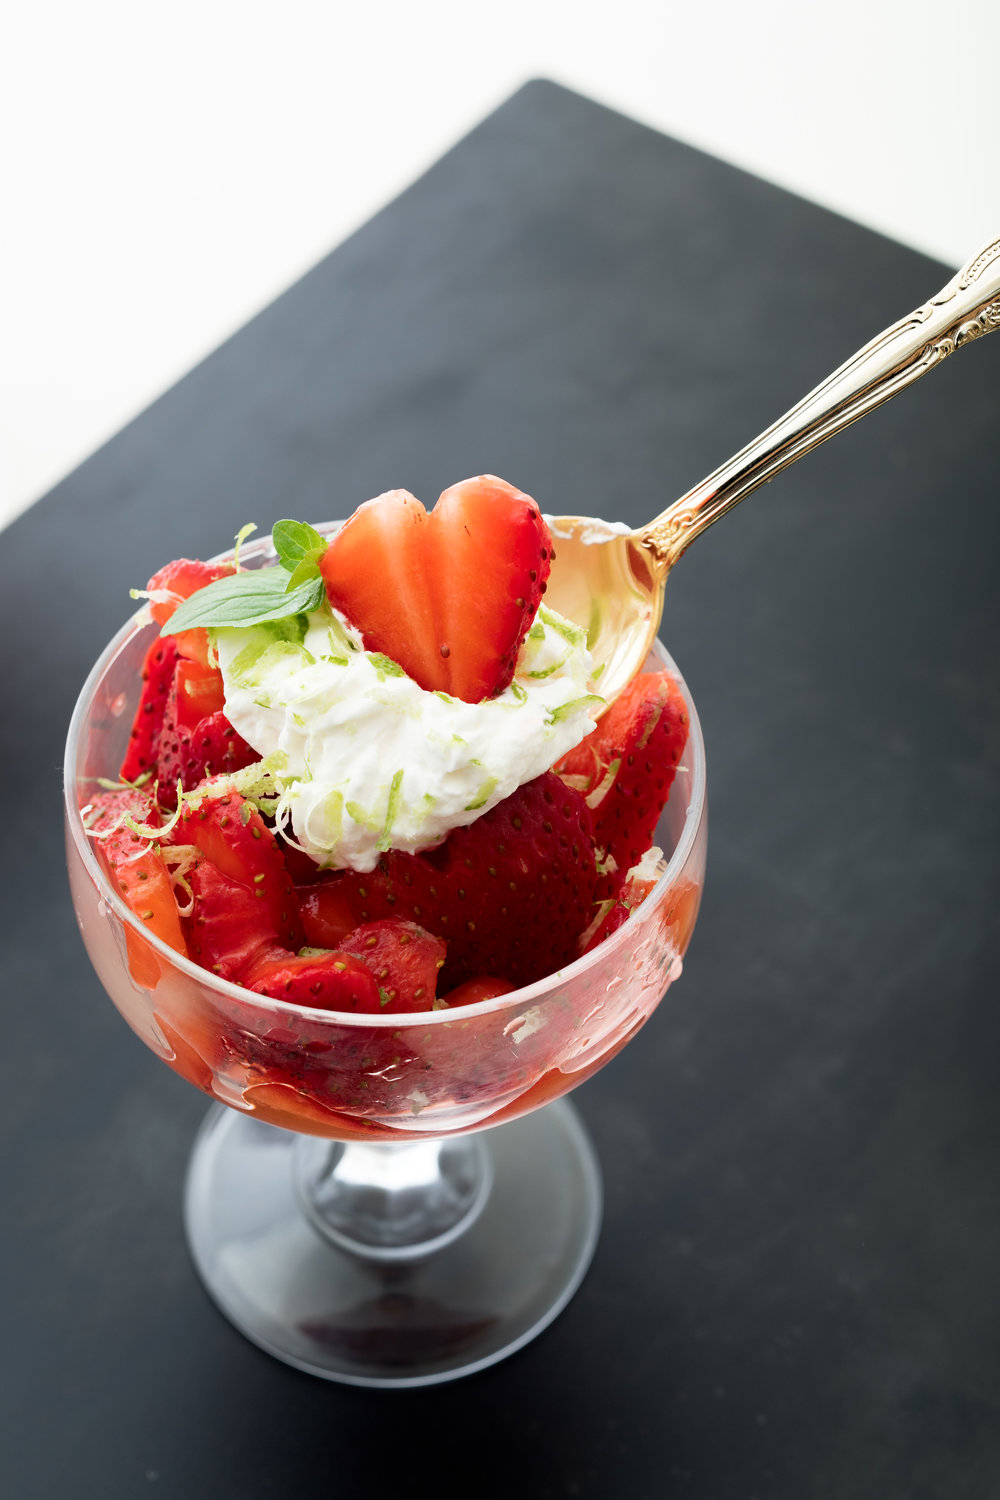 Lime Macerated Strawberries with Coconut Whip 3.jpg